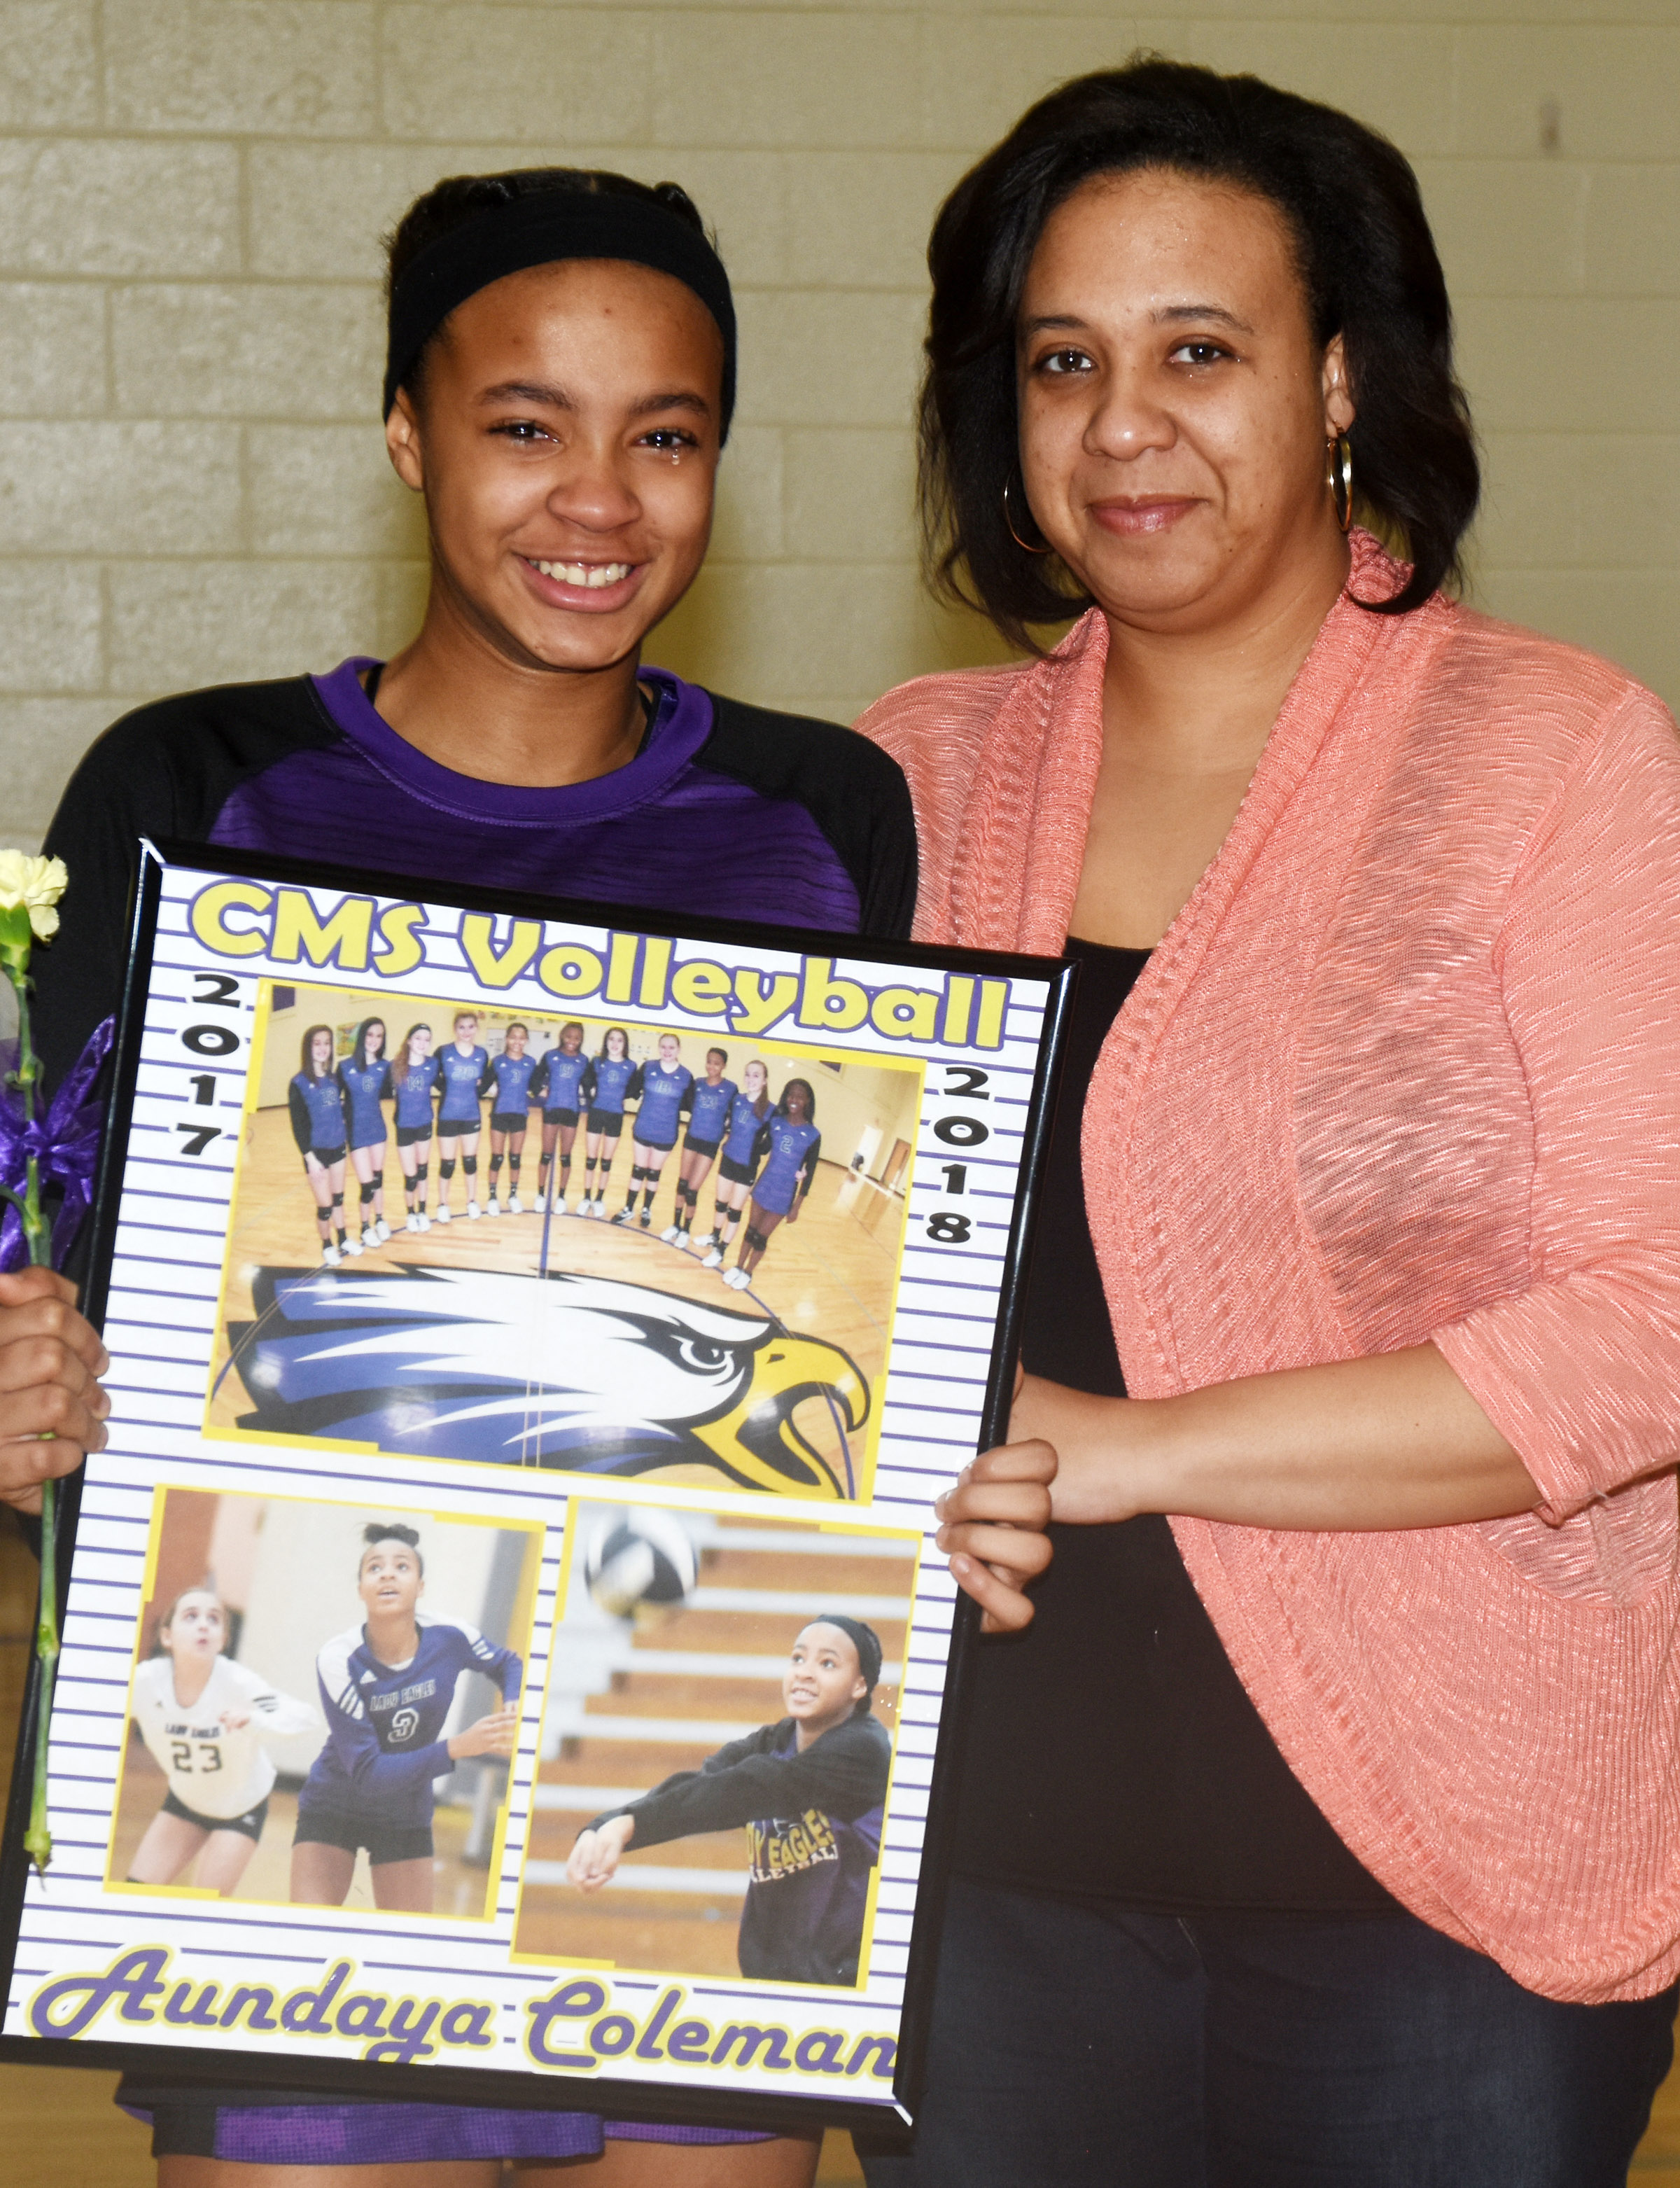 CMS eighth-grader Aundaya Coleman is honored for her dedication and hard work this season. She is pictured with her mother, Cha-Cha Smith.